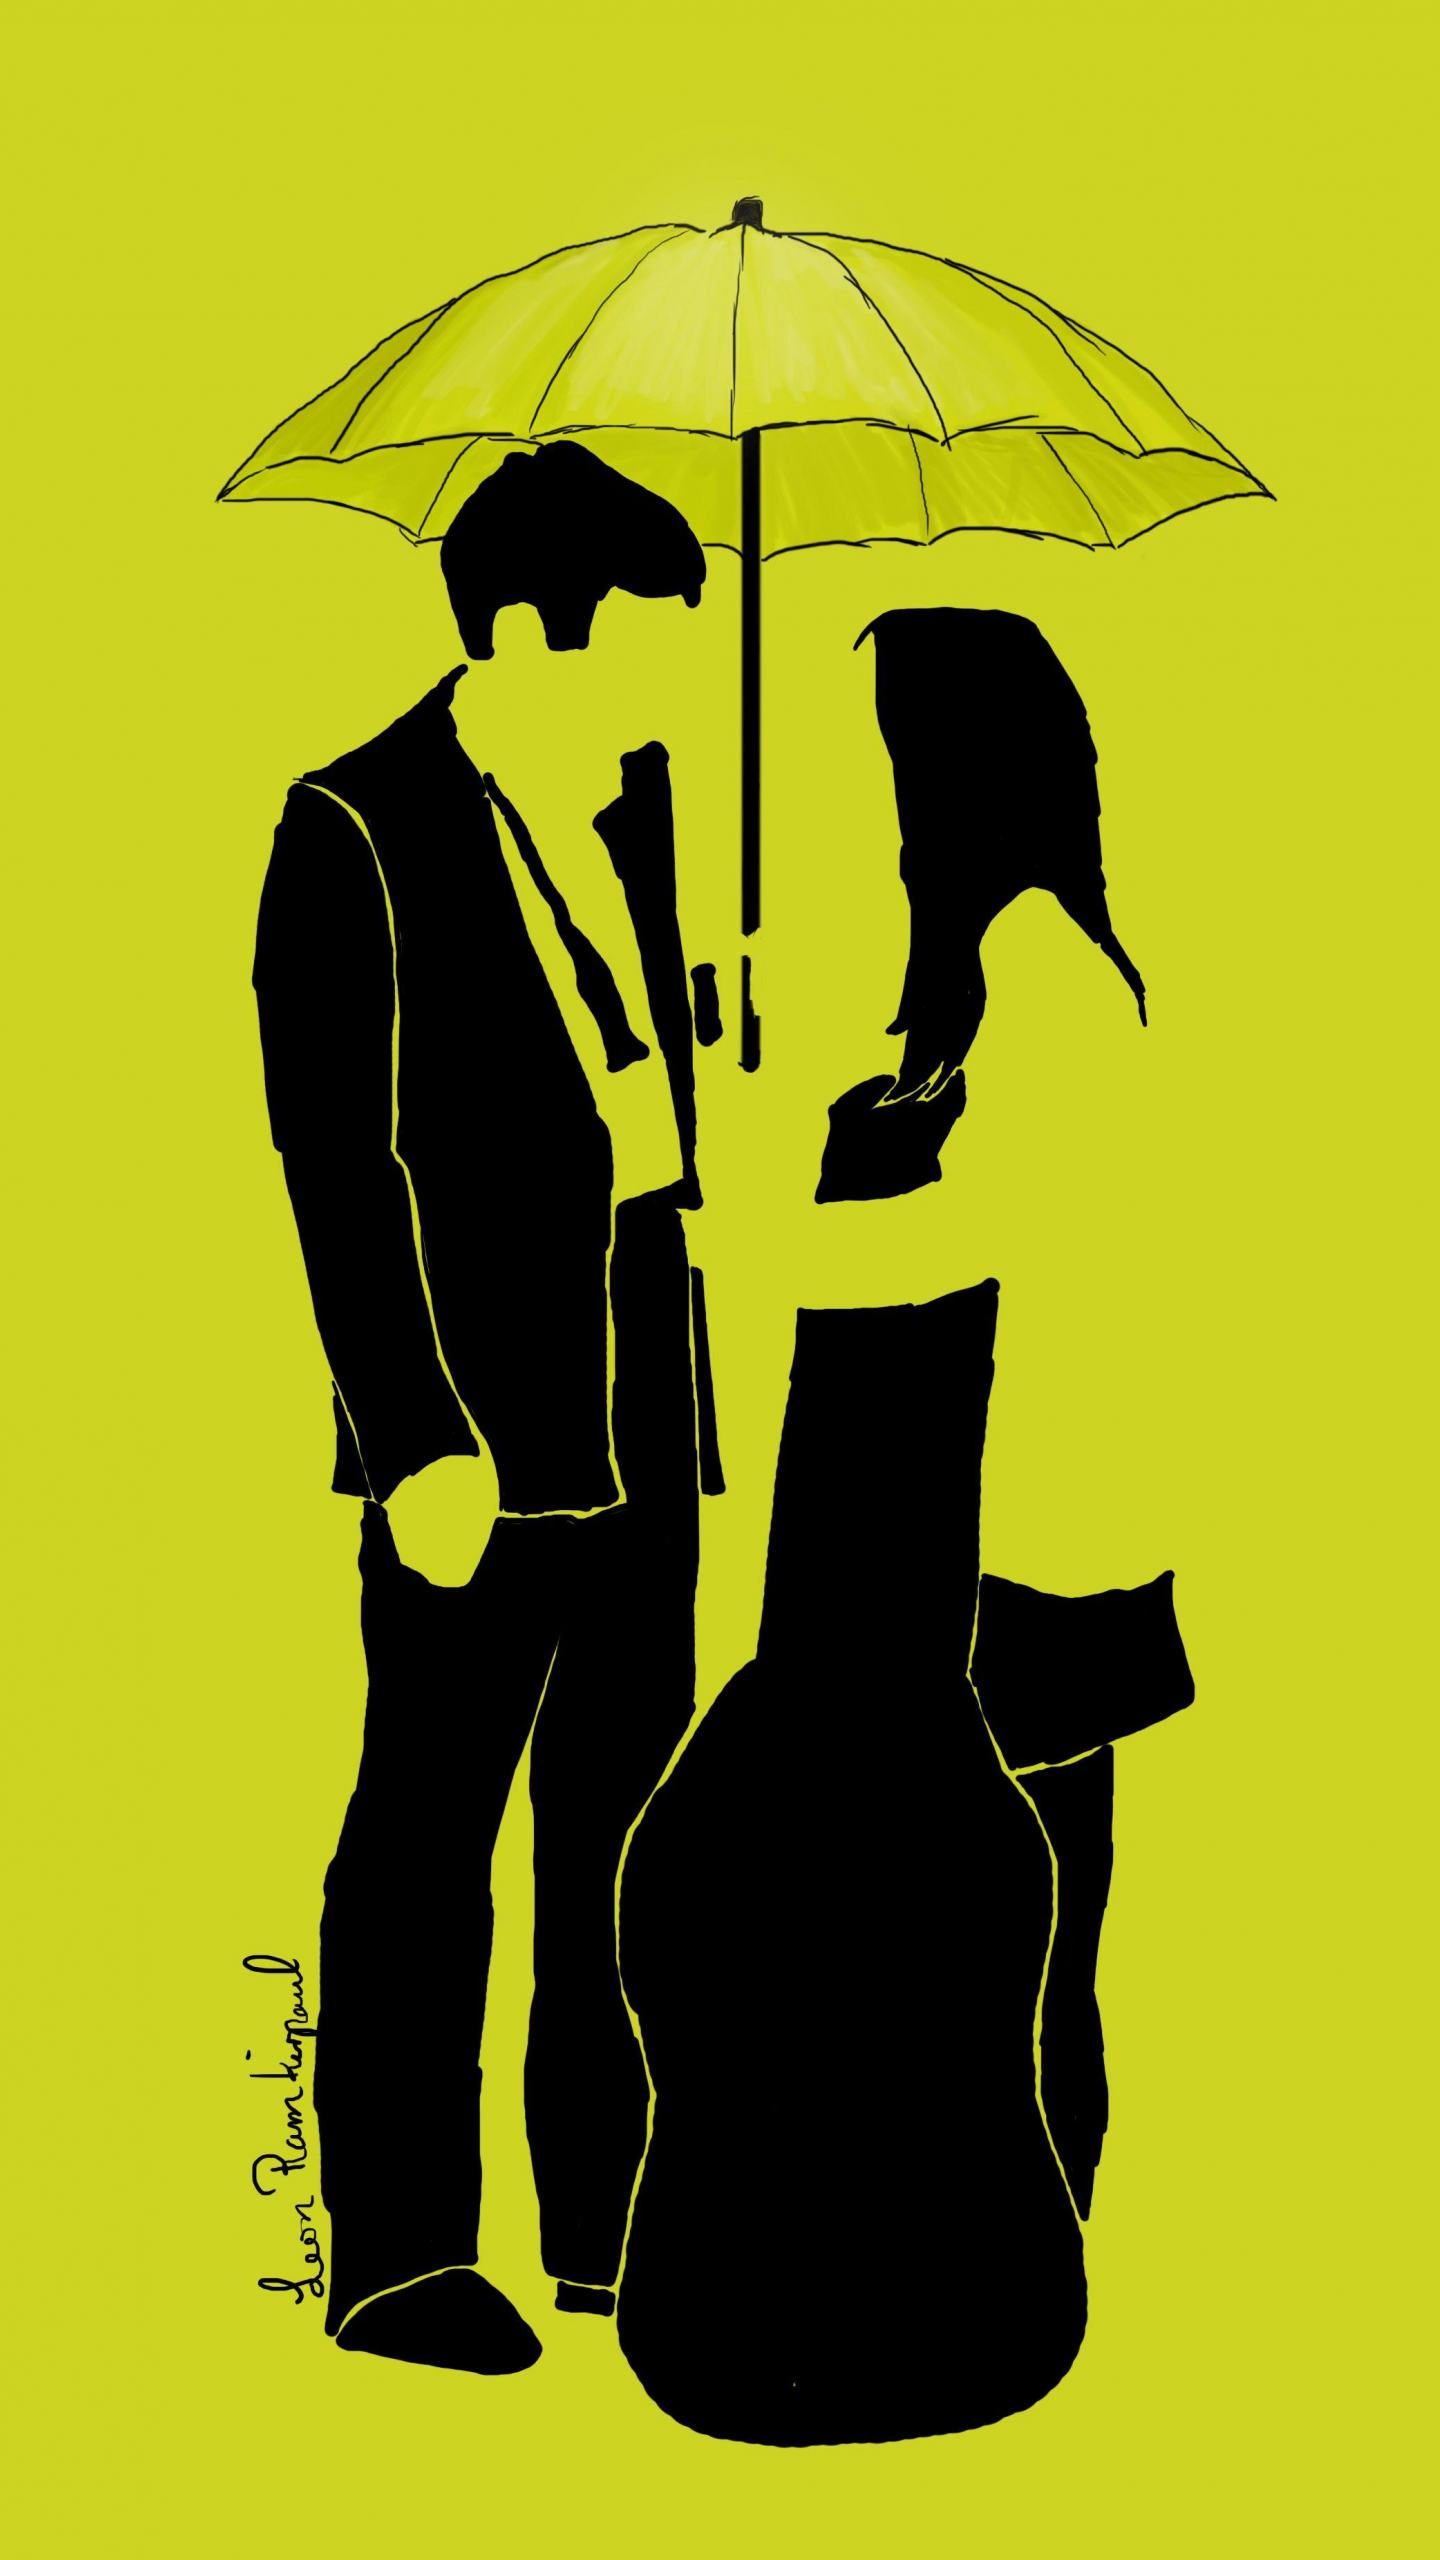 Free Download How I Met Your Mother Wallpapers 3648x3704 For